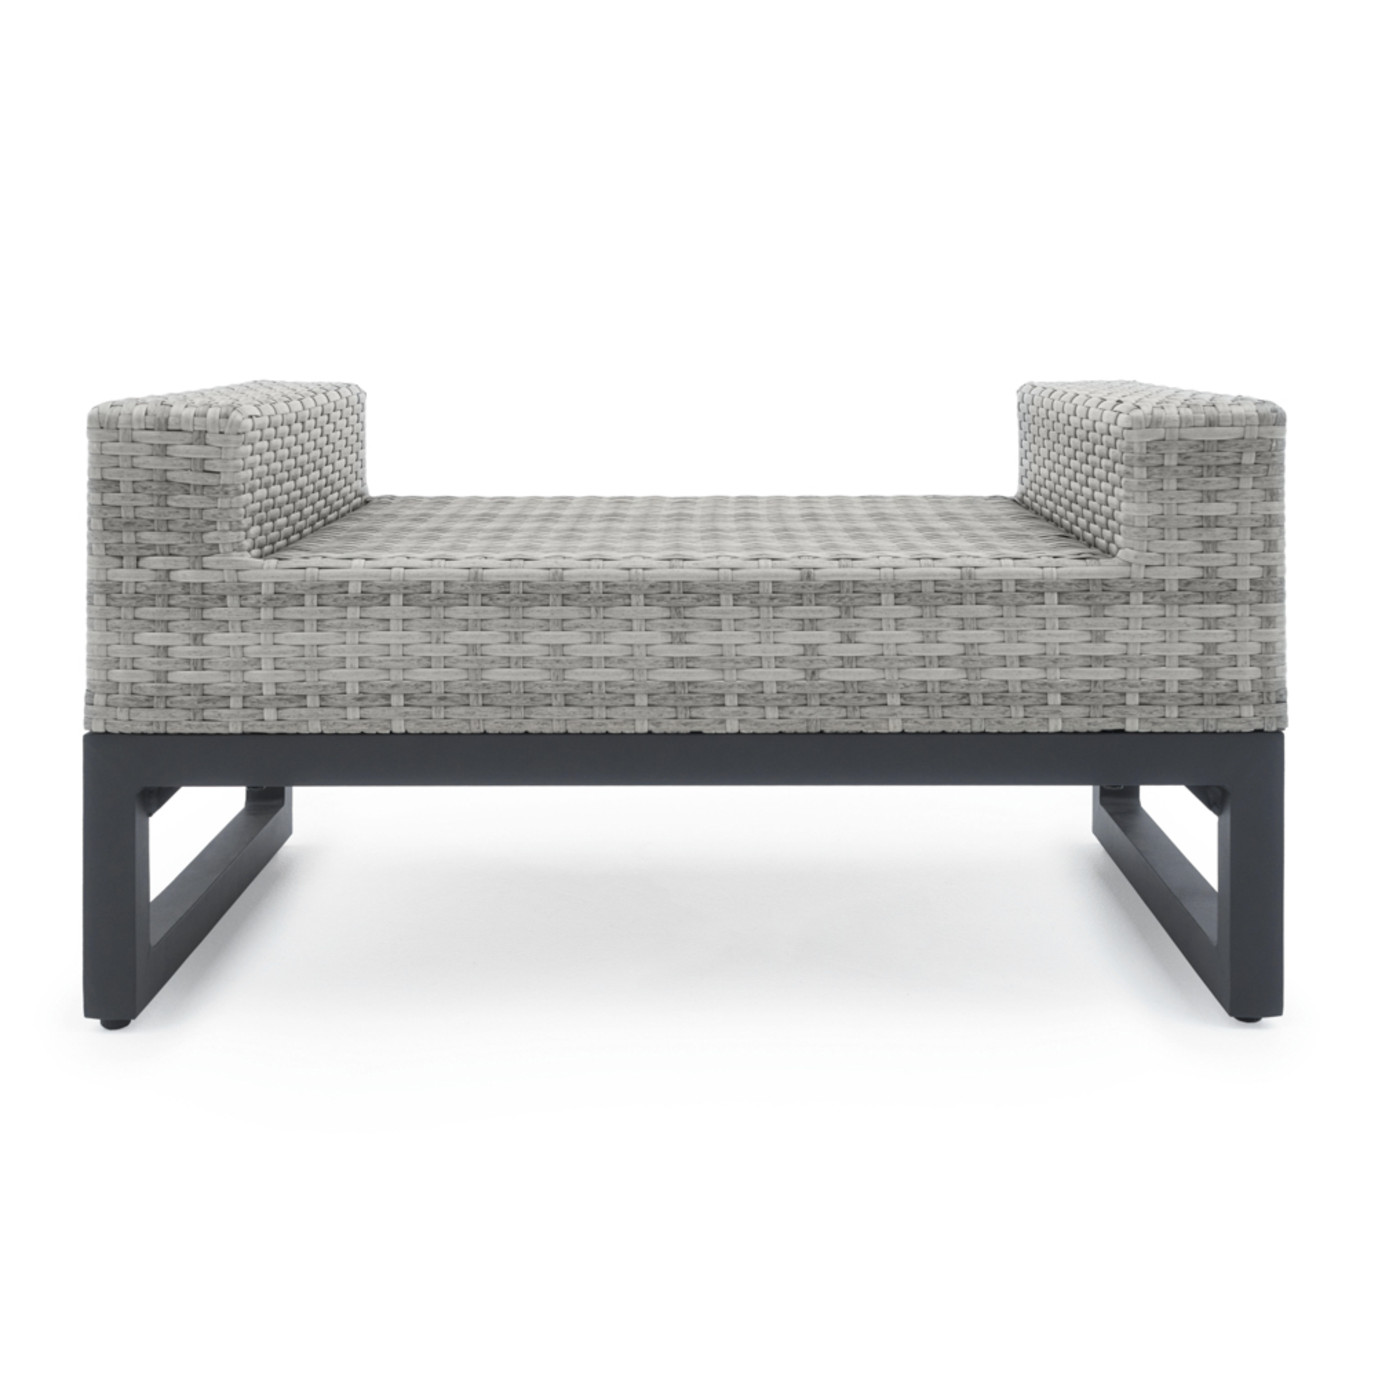 Milo™ Gray Ottomans - Sunset Red